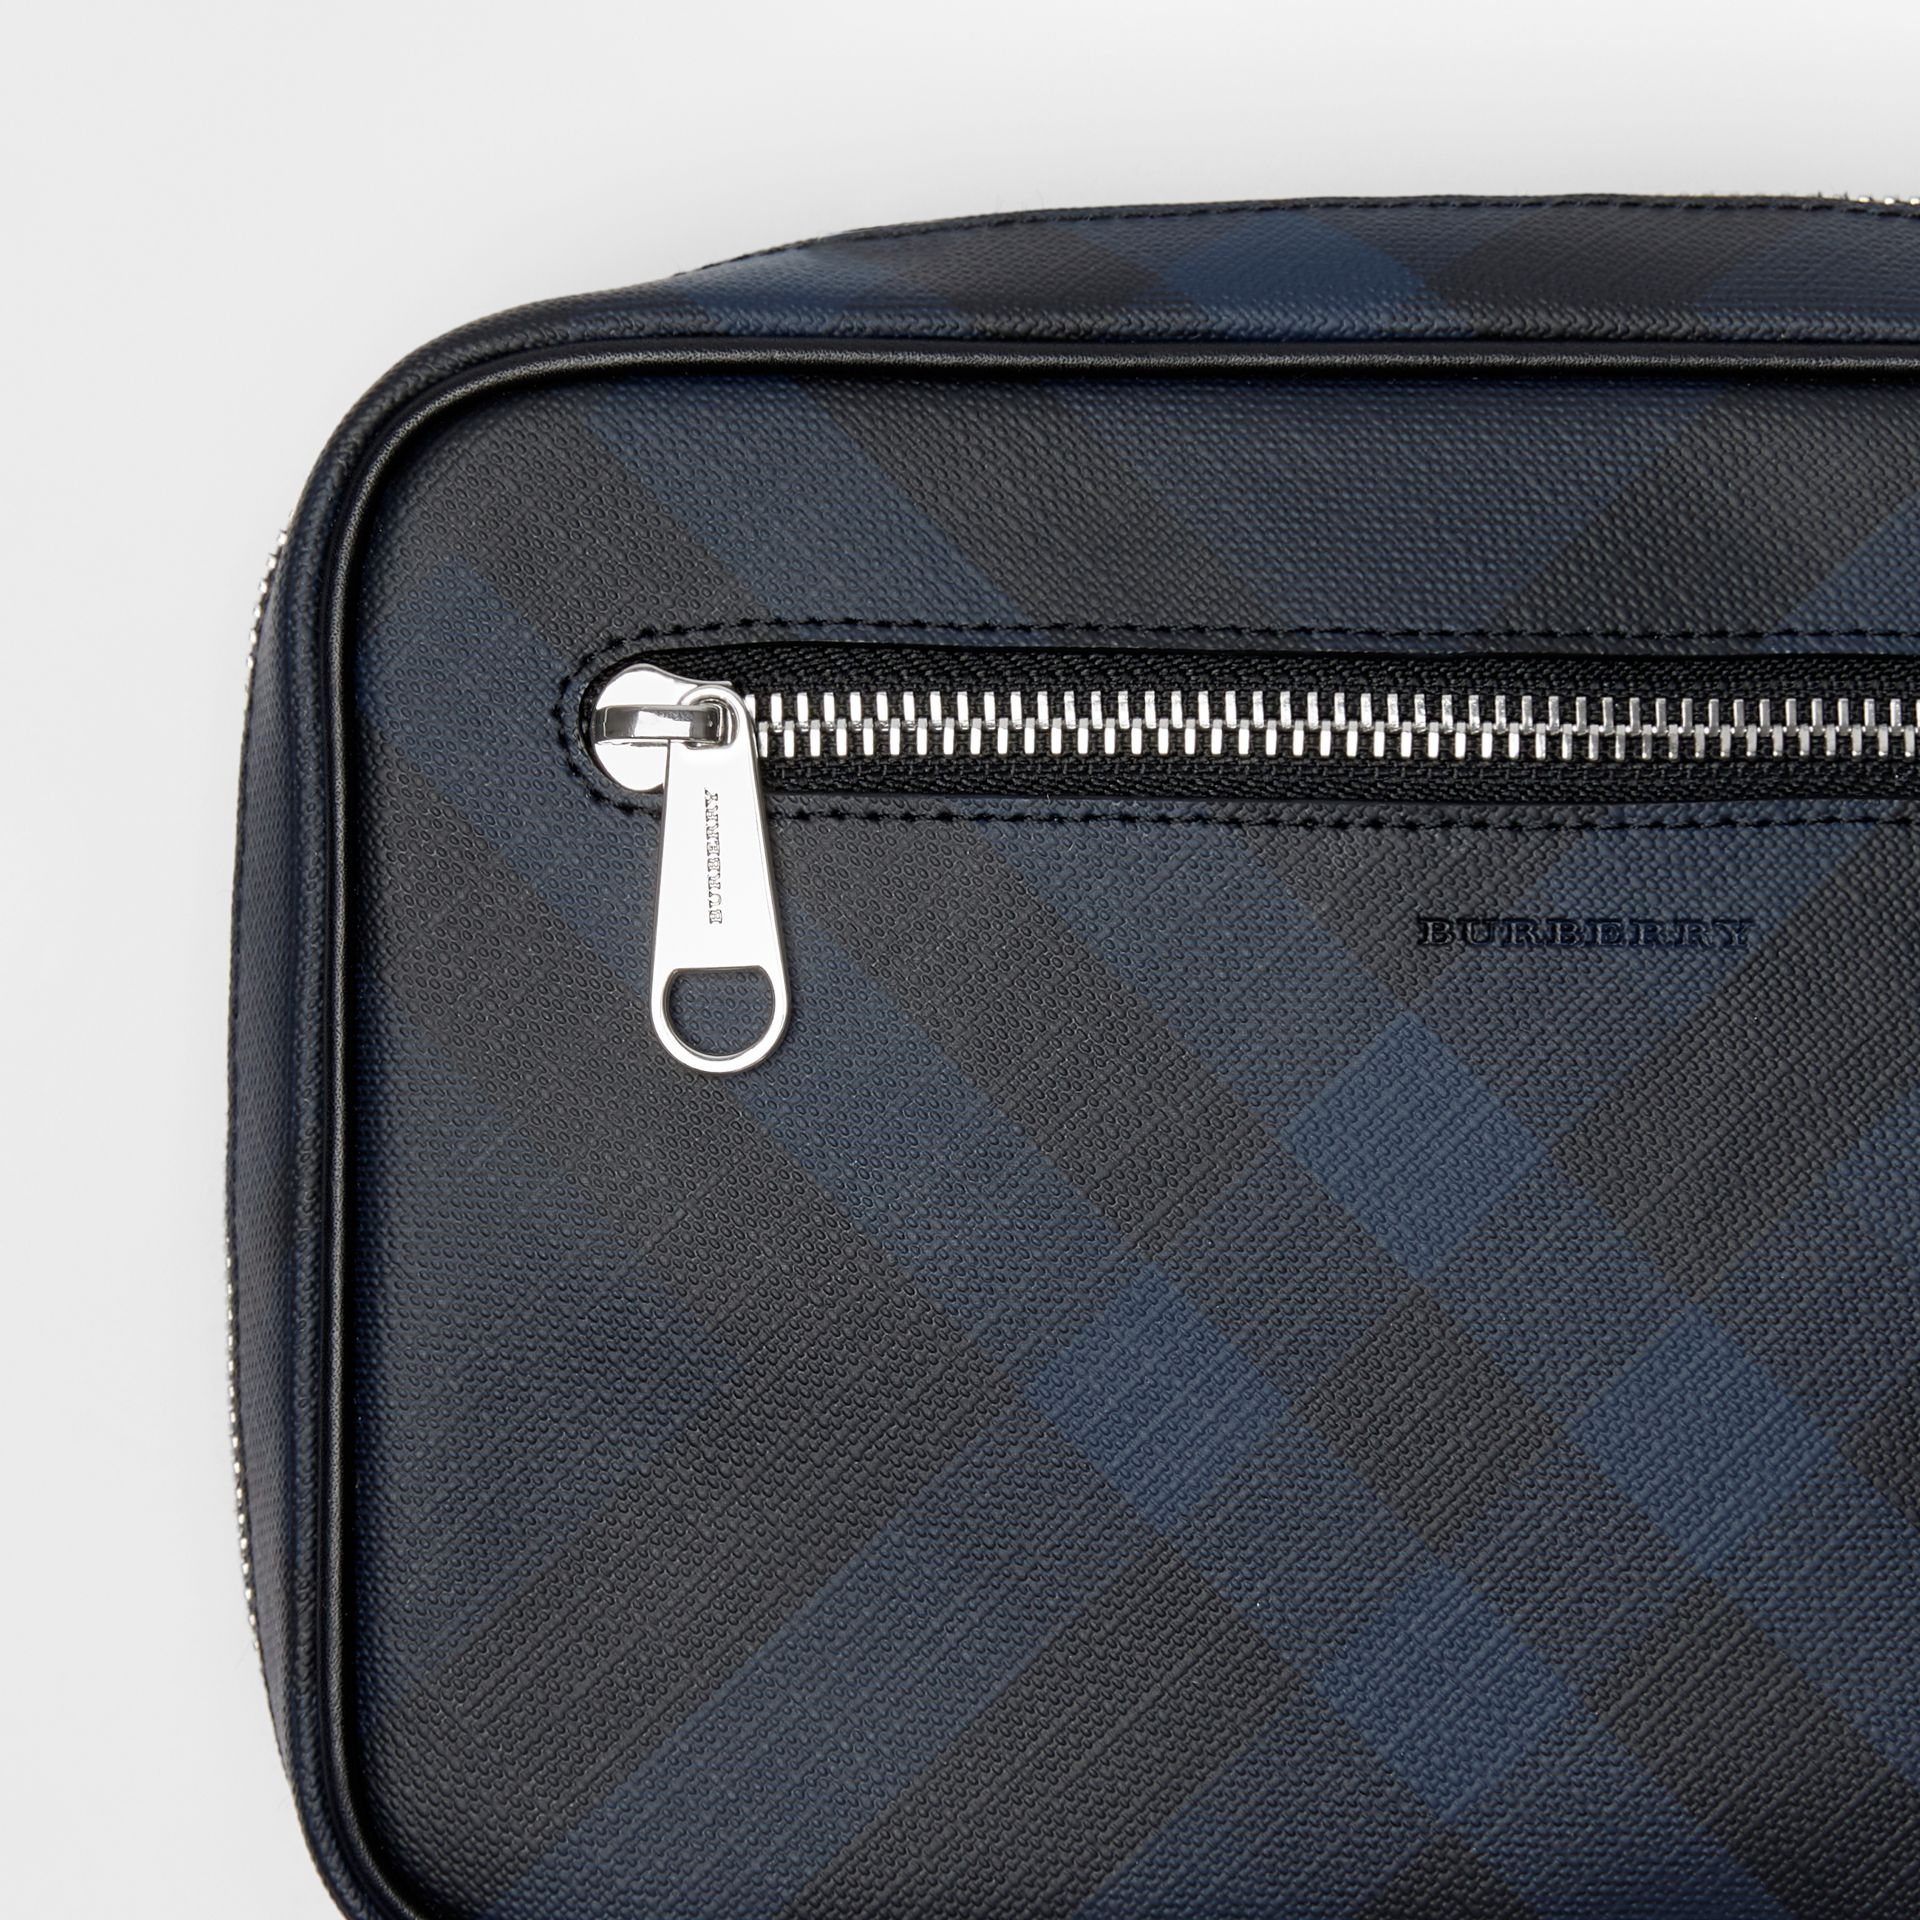 London Check Travel Pouch in Navy/black - Men | Burberry Australia - gallery image 1